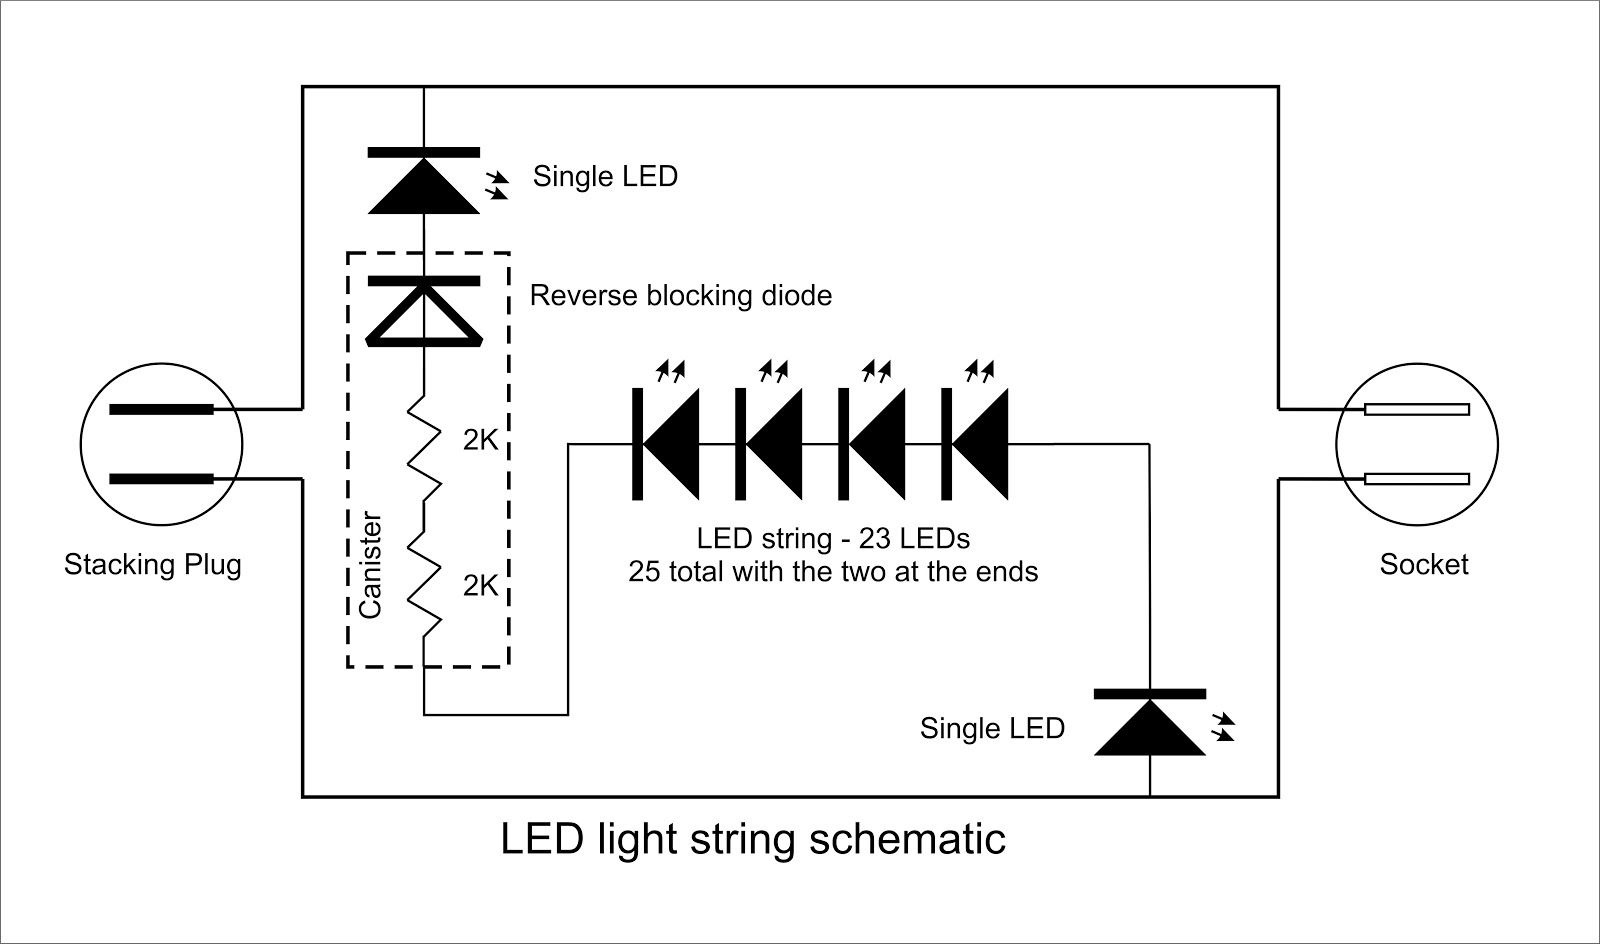 Led Light String Schematic